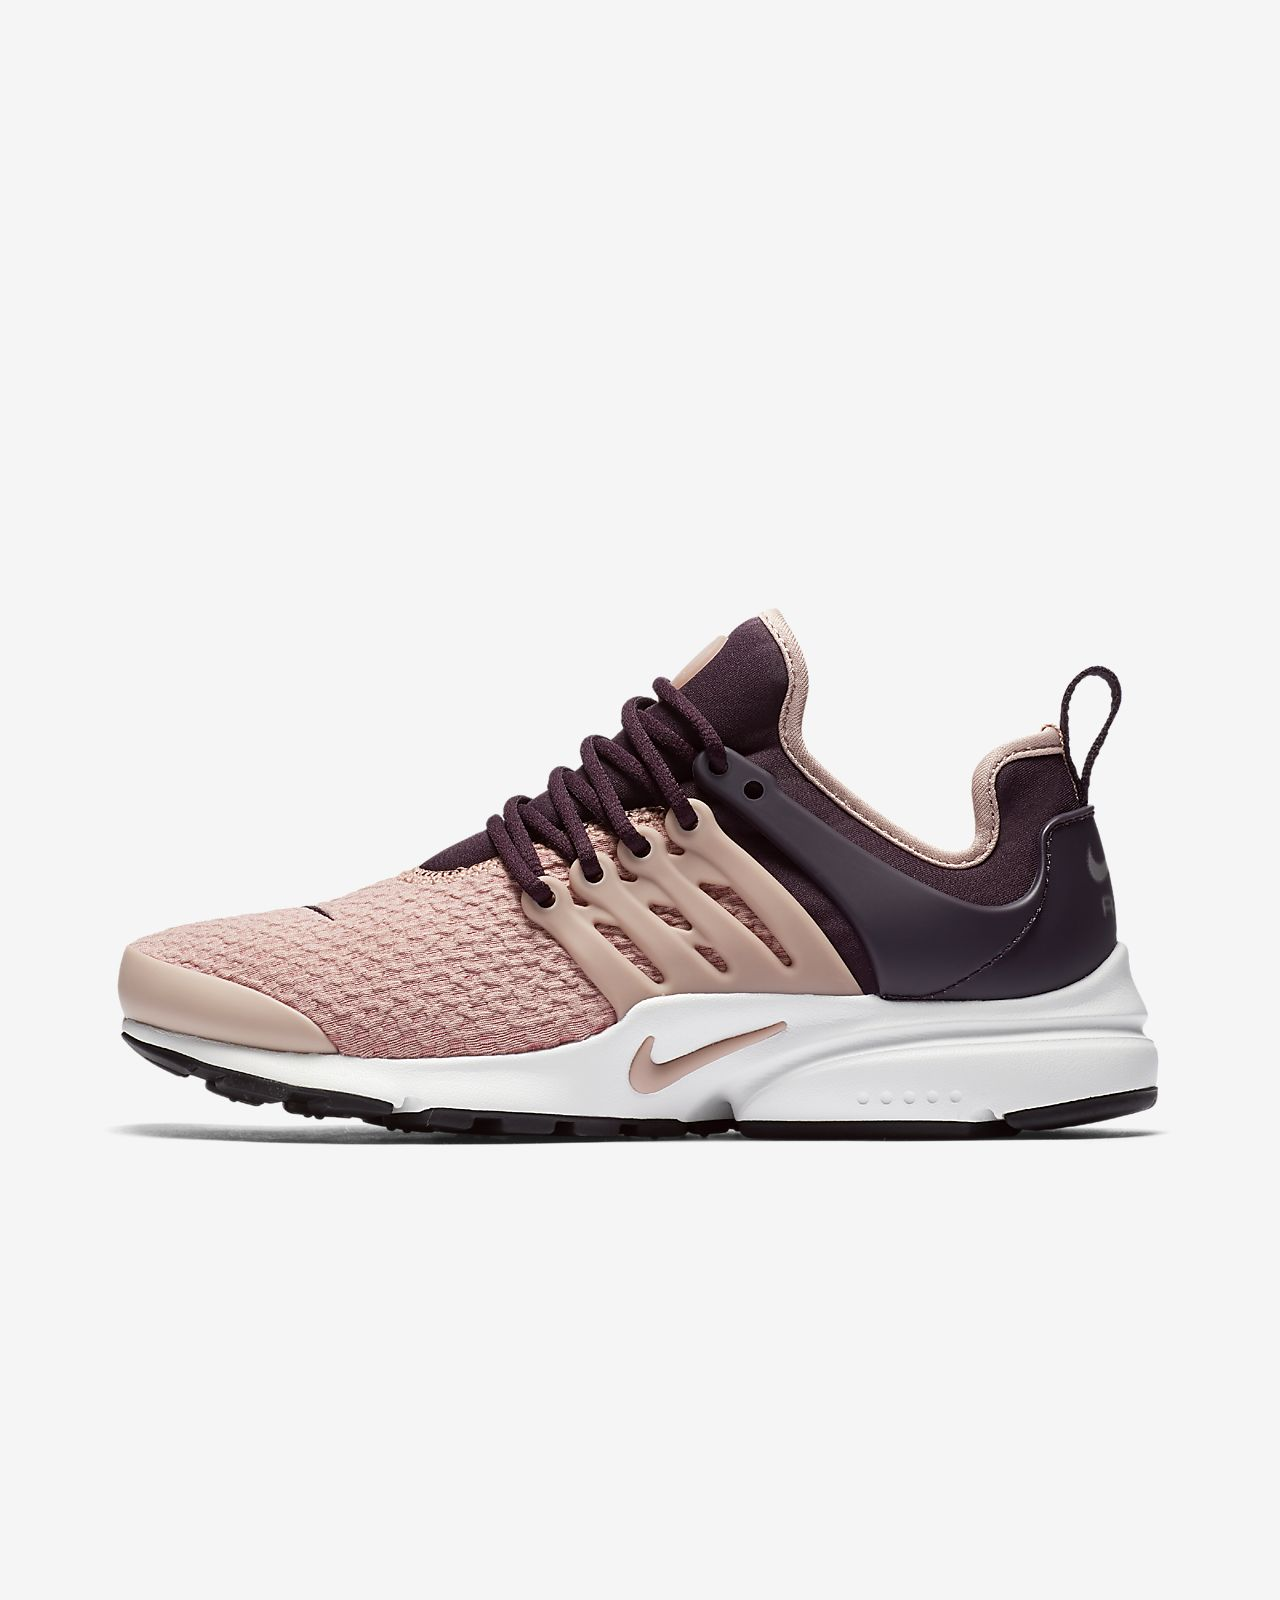 reputable site 97e01 5e0ee Women s Shoe. Nike Air Presto